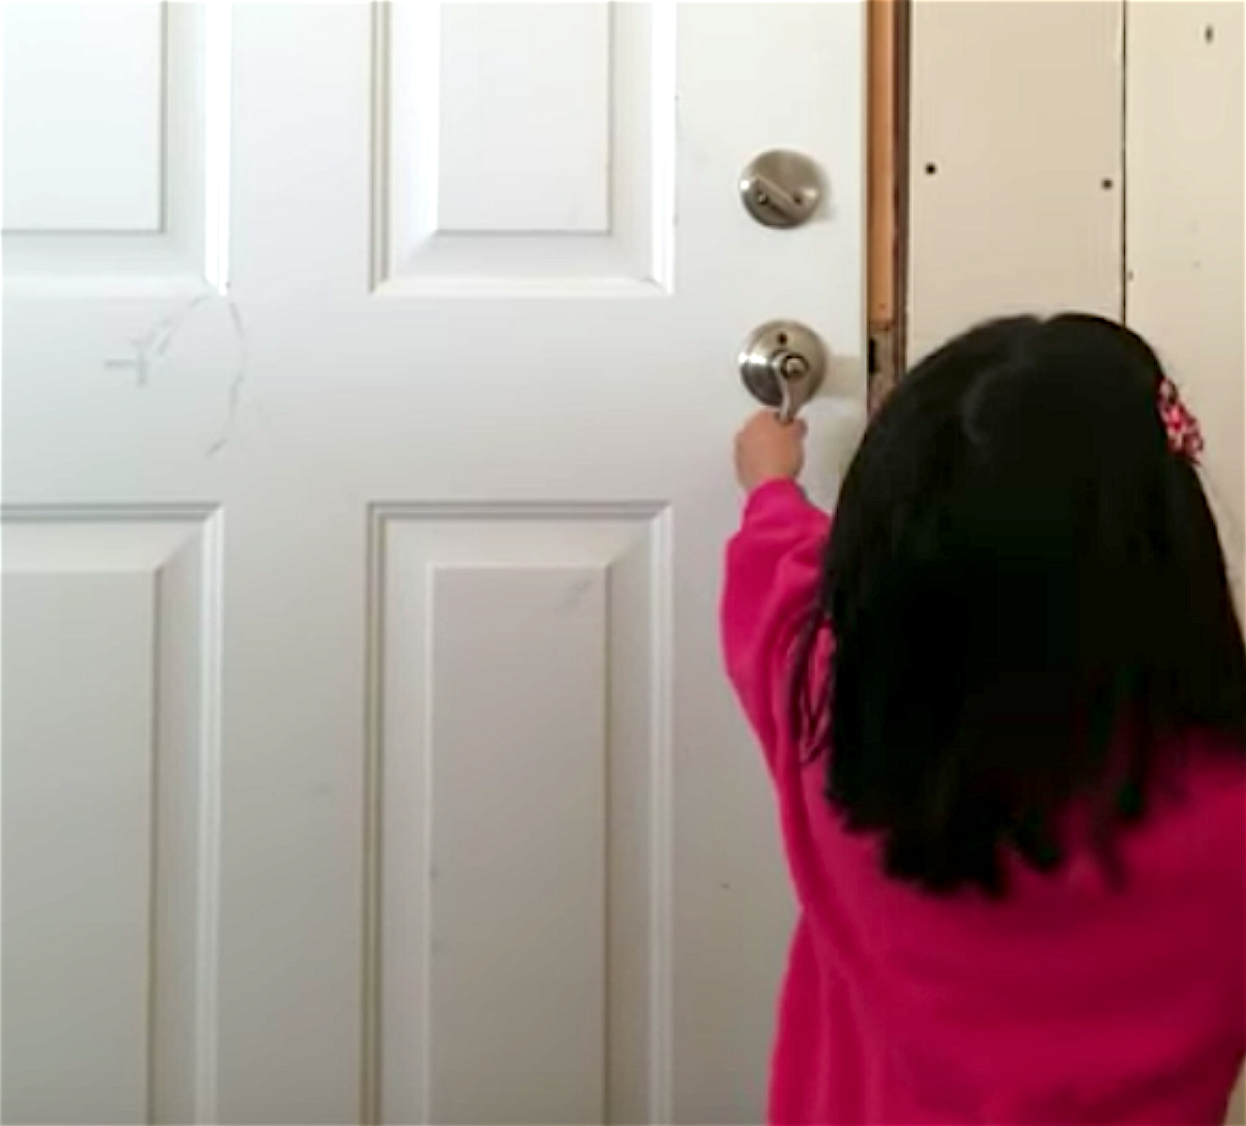 Girl, 6, shocked by what she sees after a major snowstorm